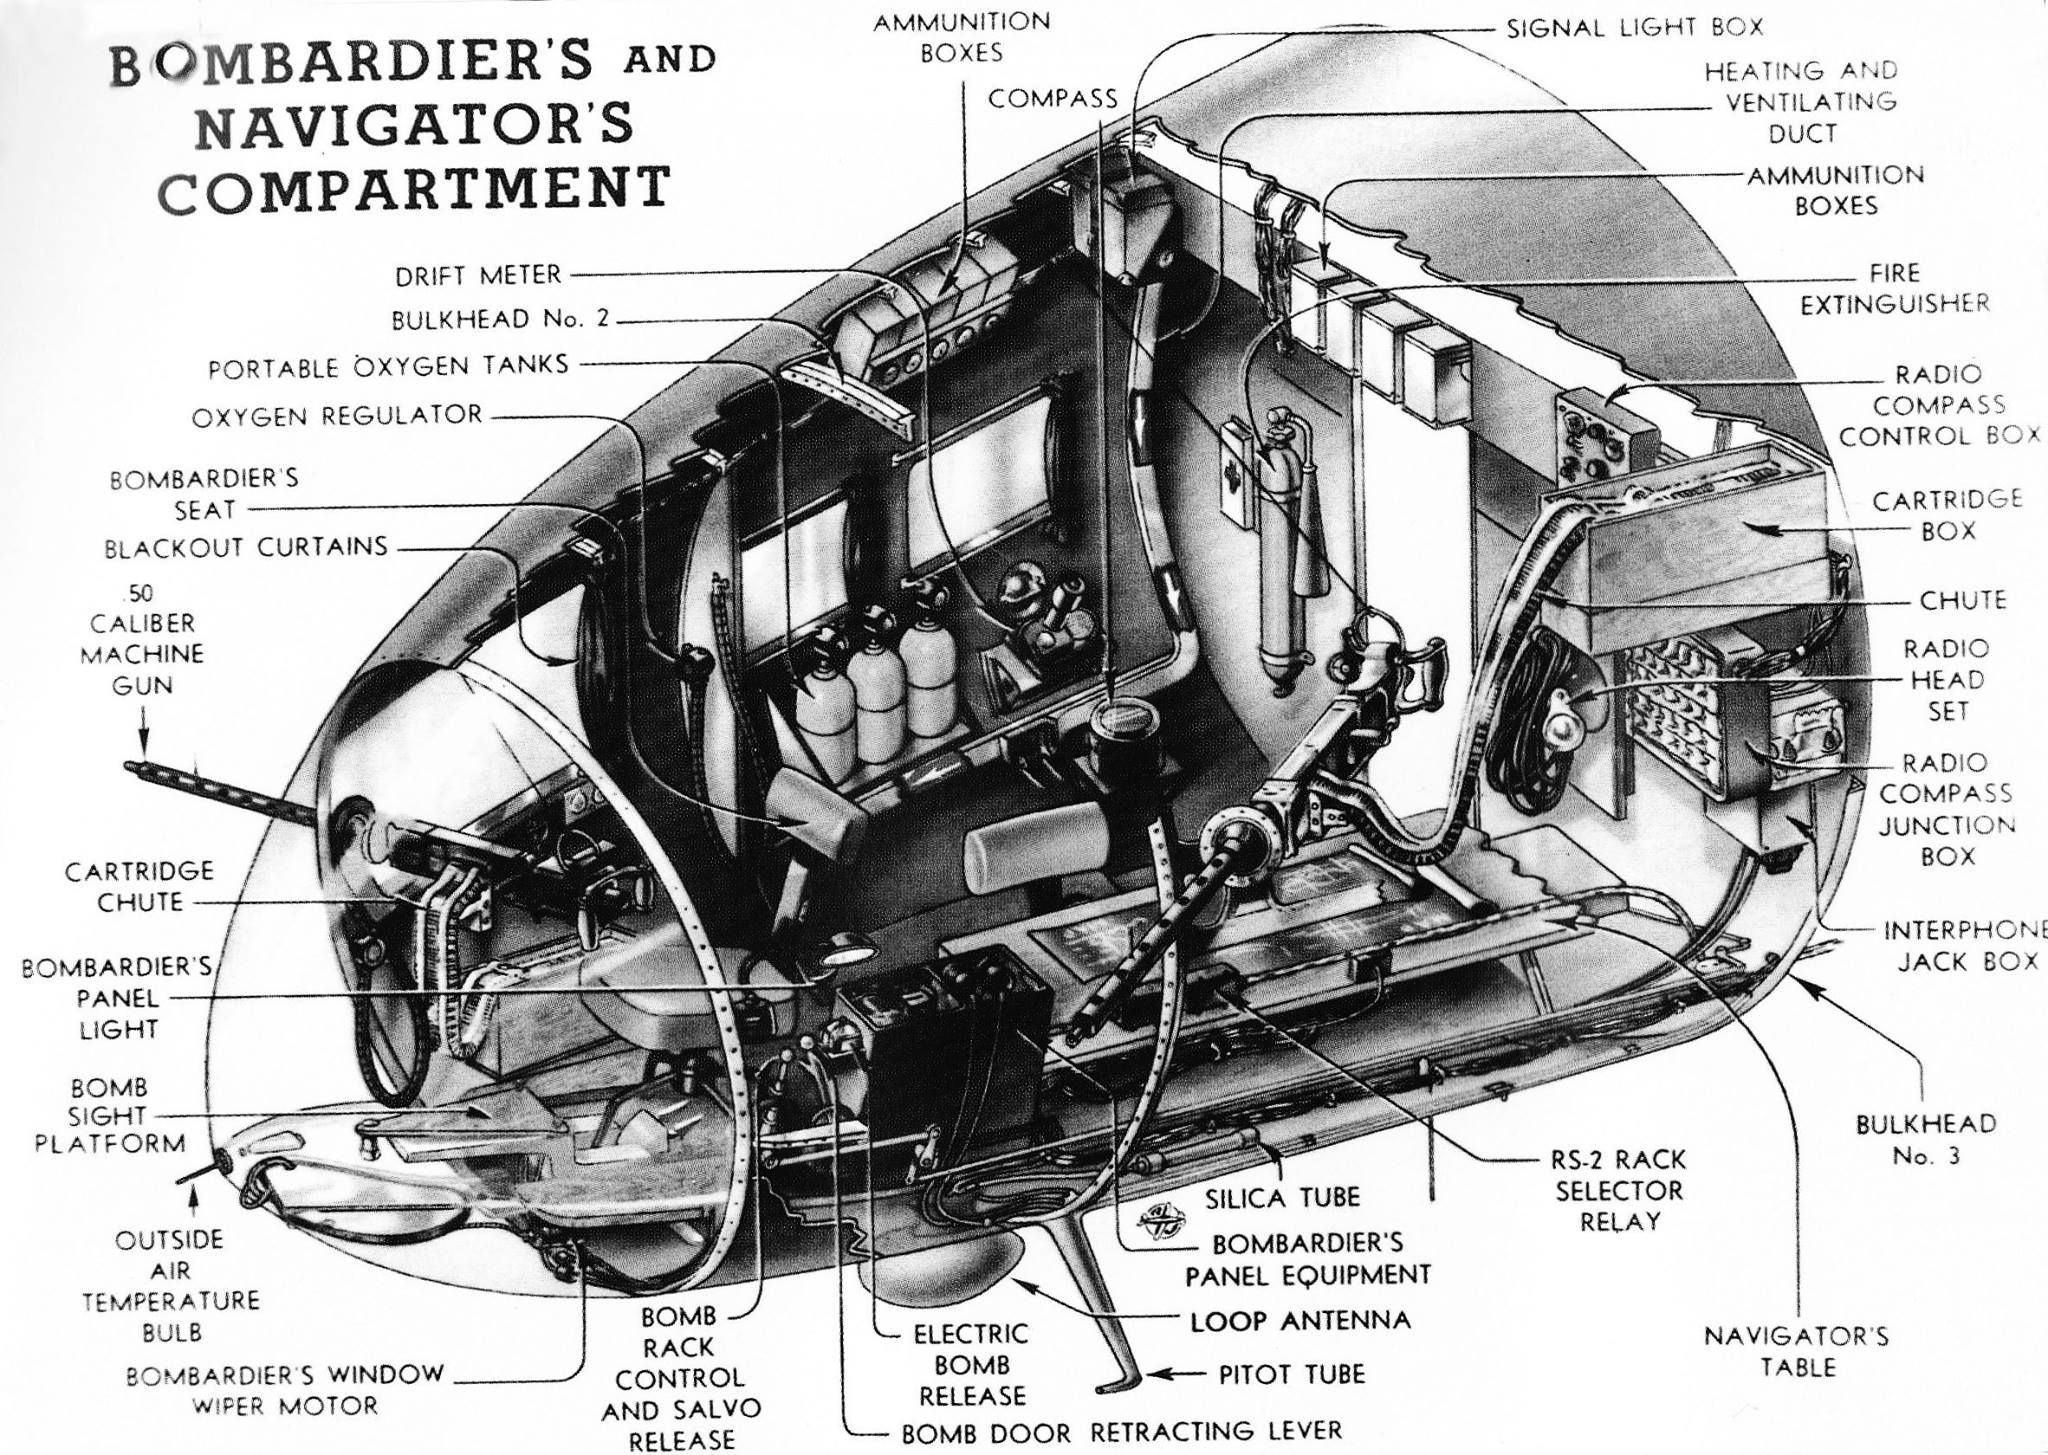 Bombardier's And Navigator's Compartment Diagram